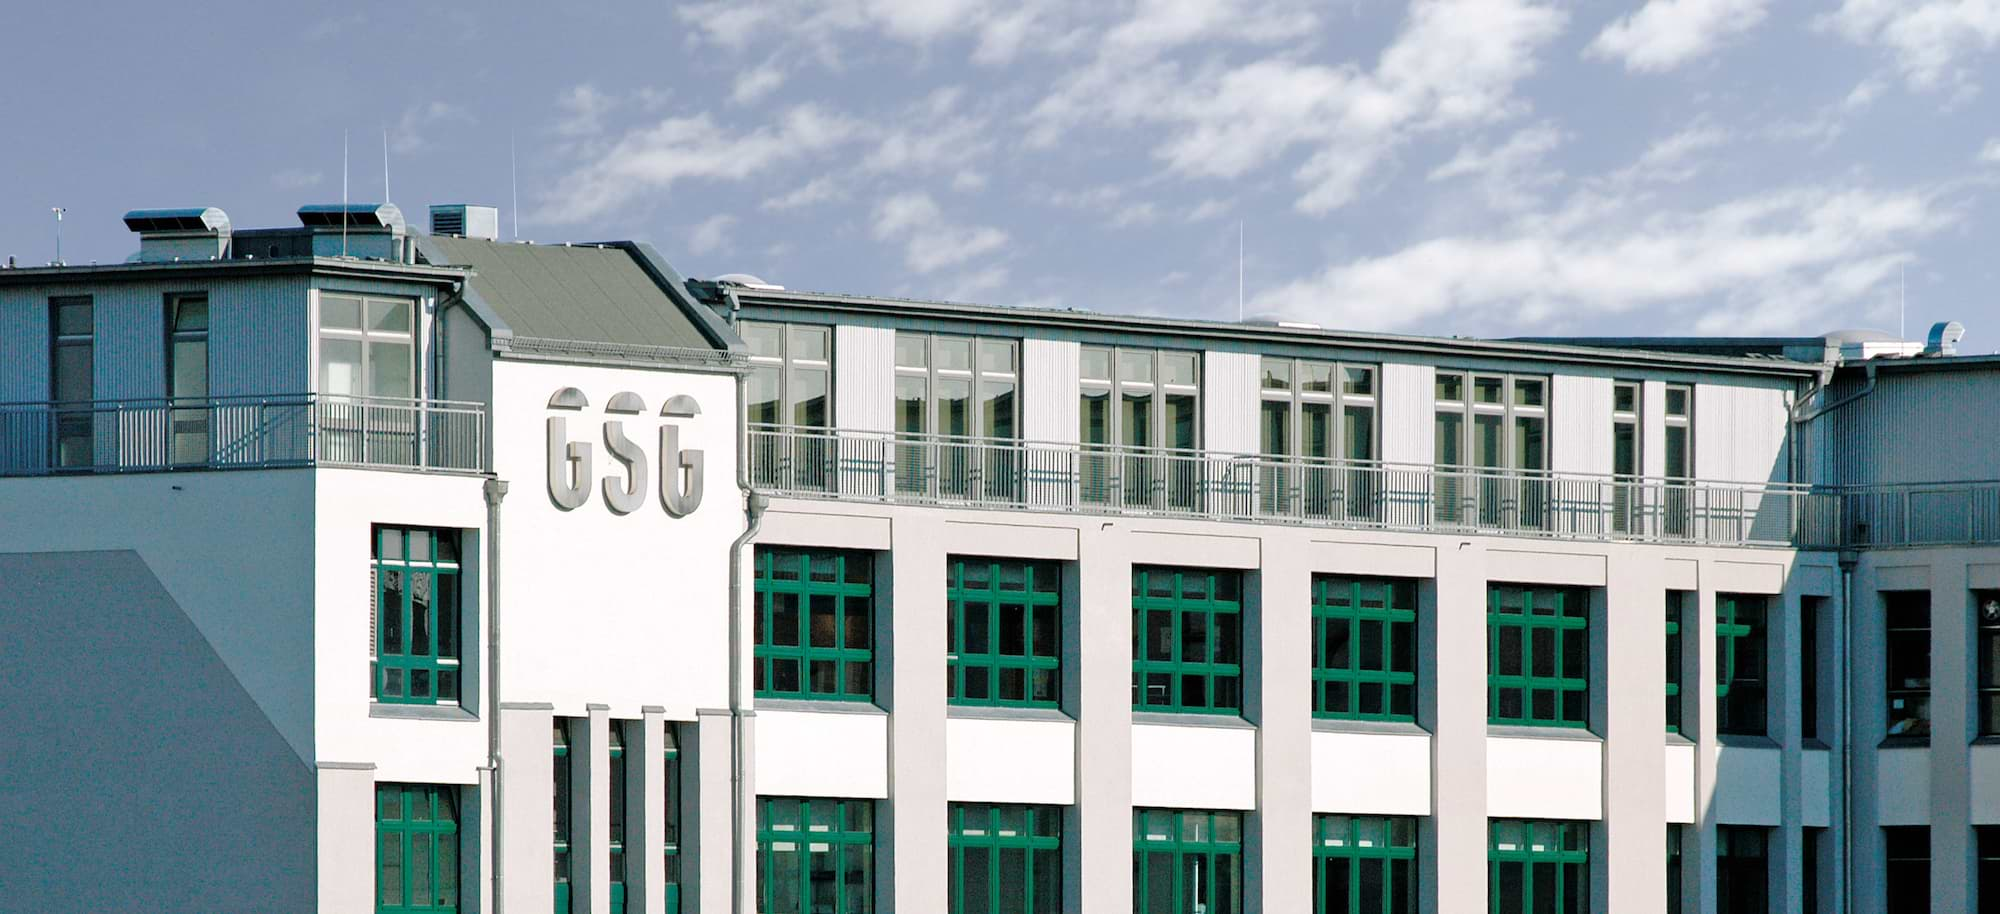 GSG Berlin records its highest occupancy rate in 50 years of company history and is continuing to grow